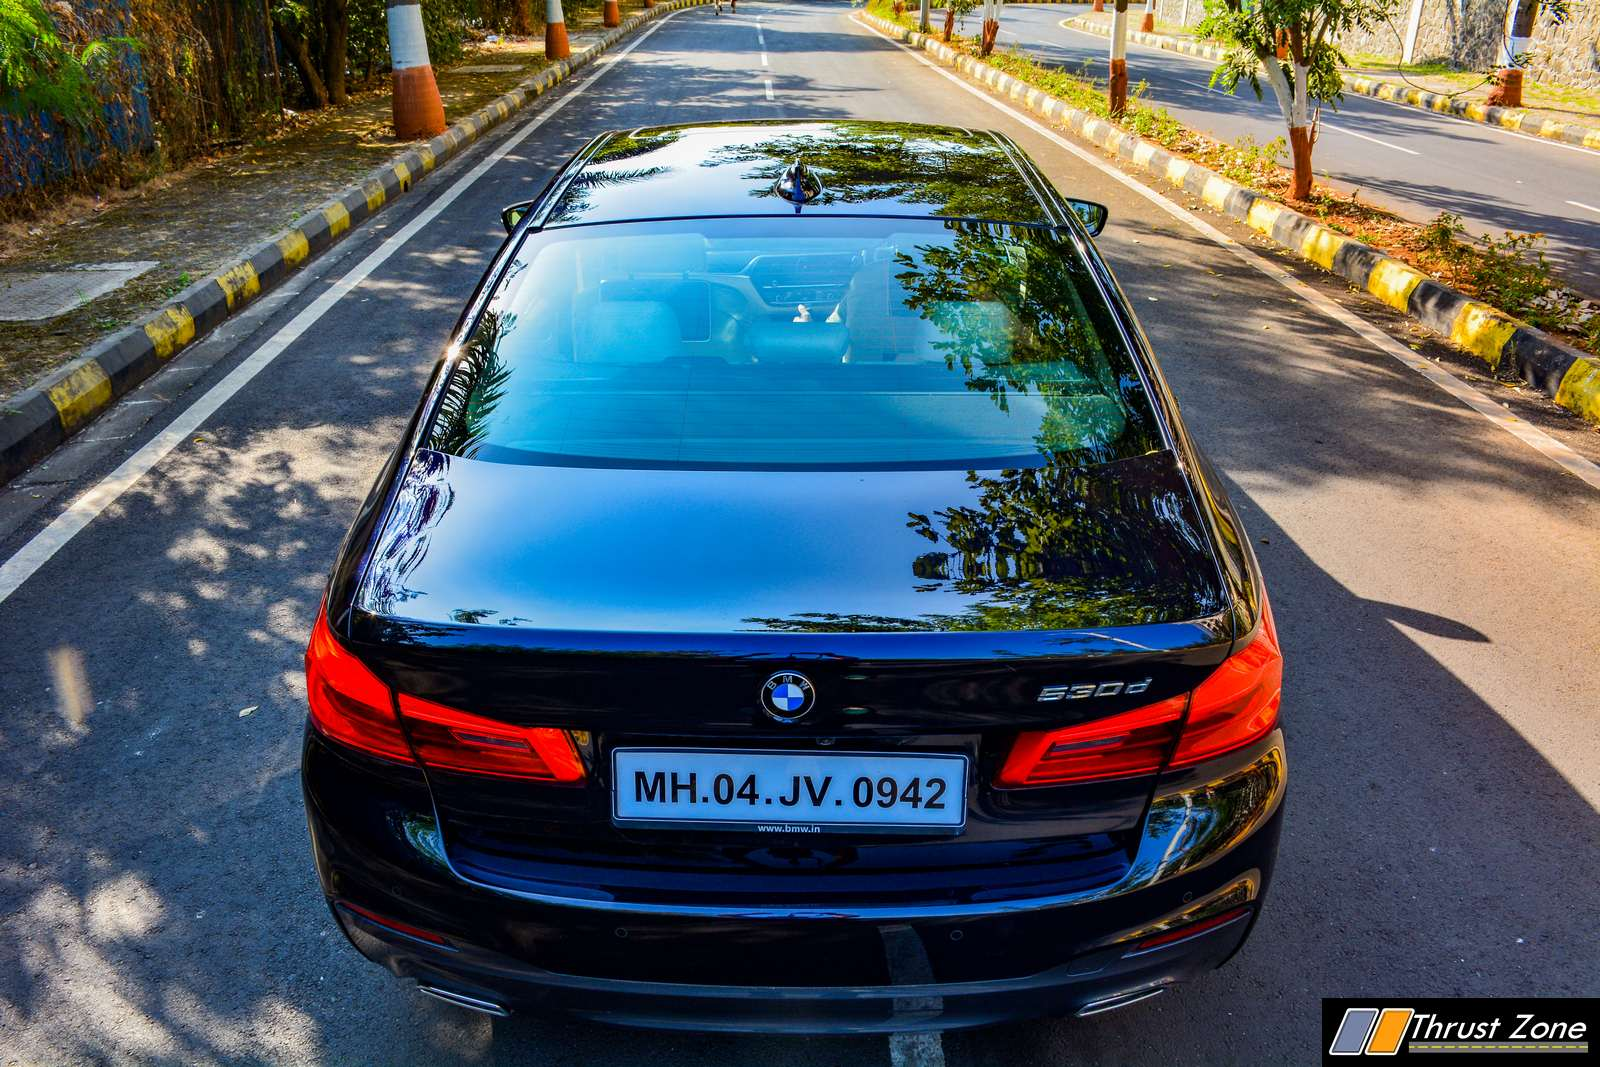 http://www.thrustzone.com/wp-content/uploads/2019/01/2018-BMW-530d-India-Review-15.jpg